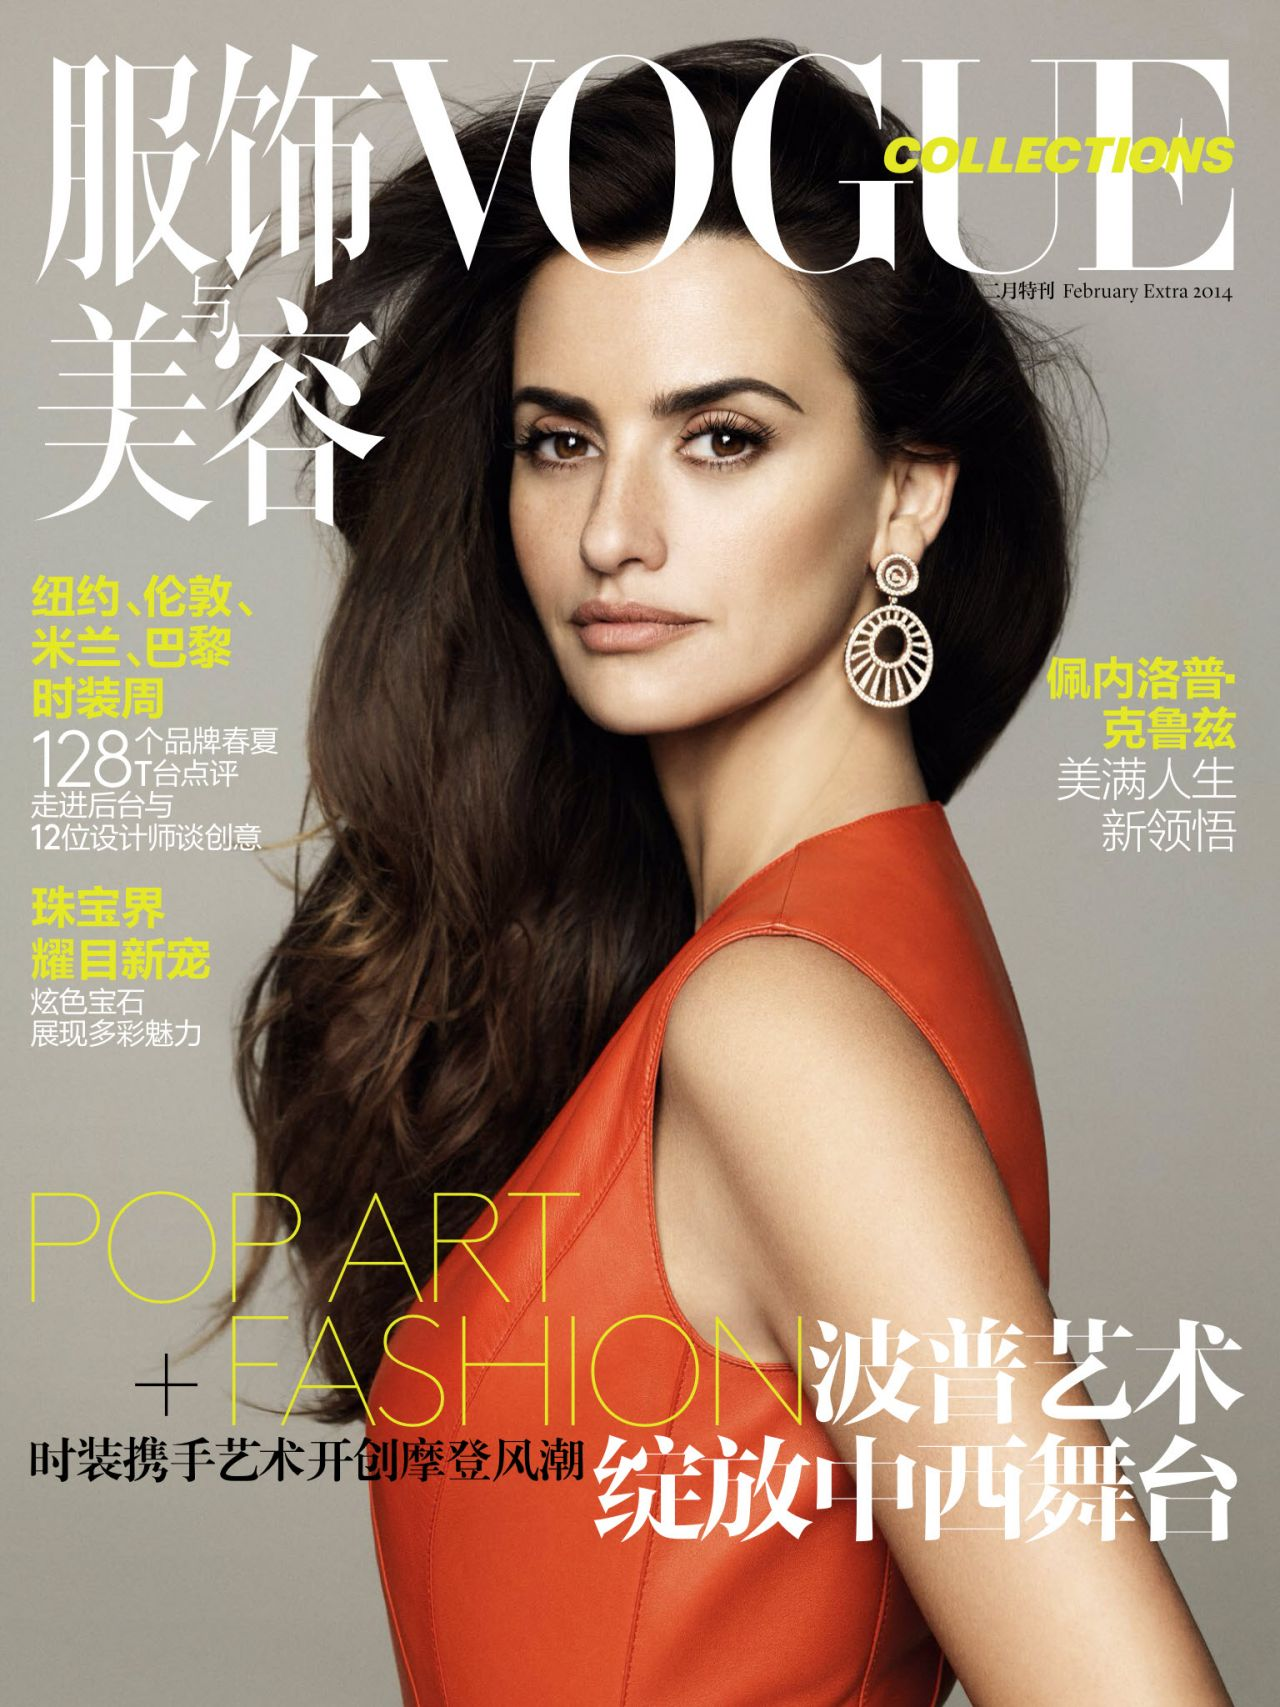 VOGUE Magazine (China) Collections